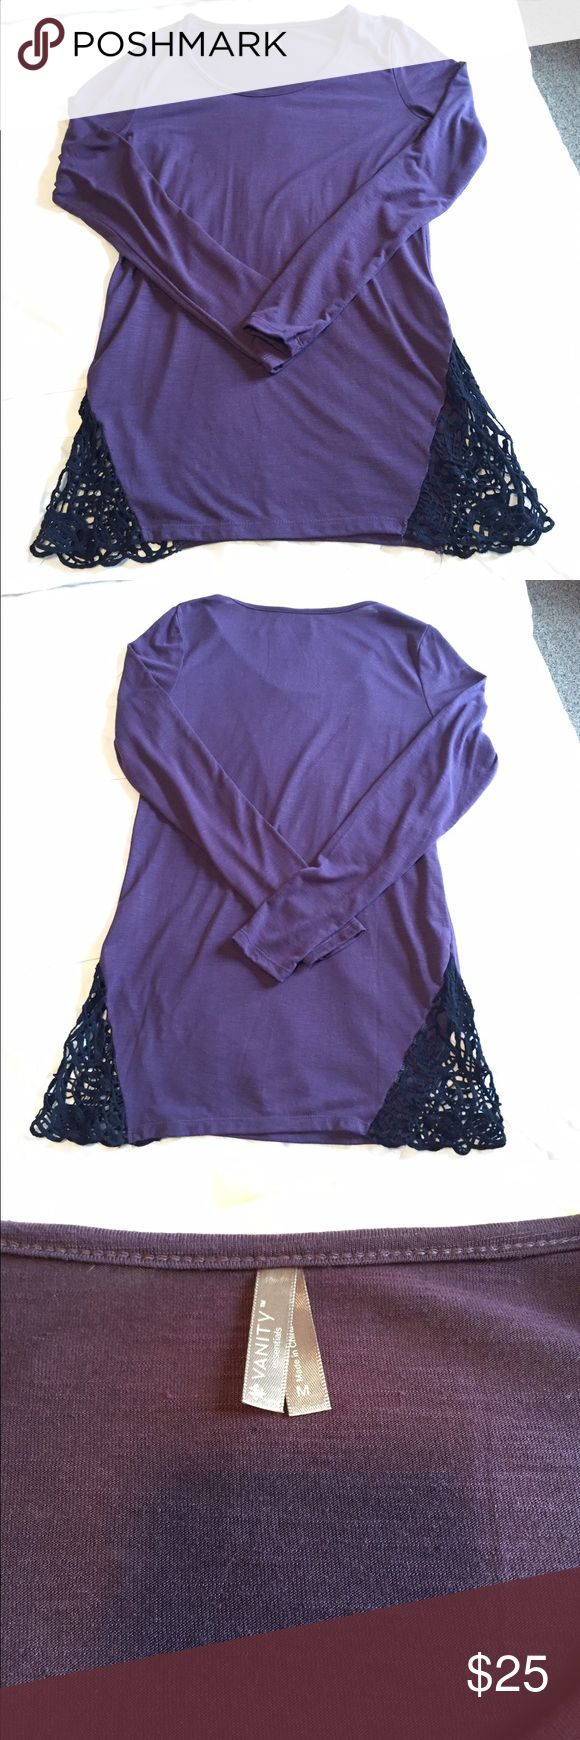 """NWOT Vanity Purple top NWOT Purple top with black crocheted details on both sides.  Long Sleeves.  Scoop neckline.  30"""" long, 17 1/2"""" across chest from armpit to armpit.   friendly home.  No trades. Vanity Tops Tees - Long Sleeve"""